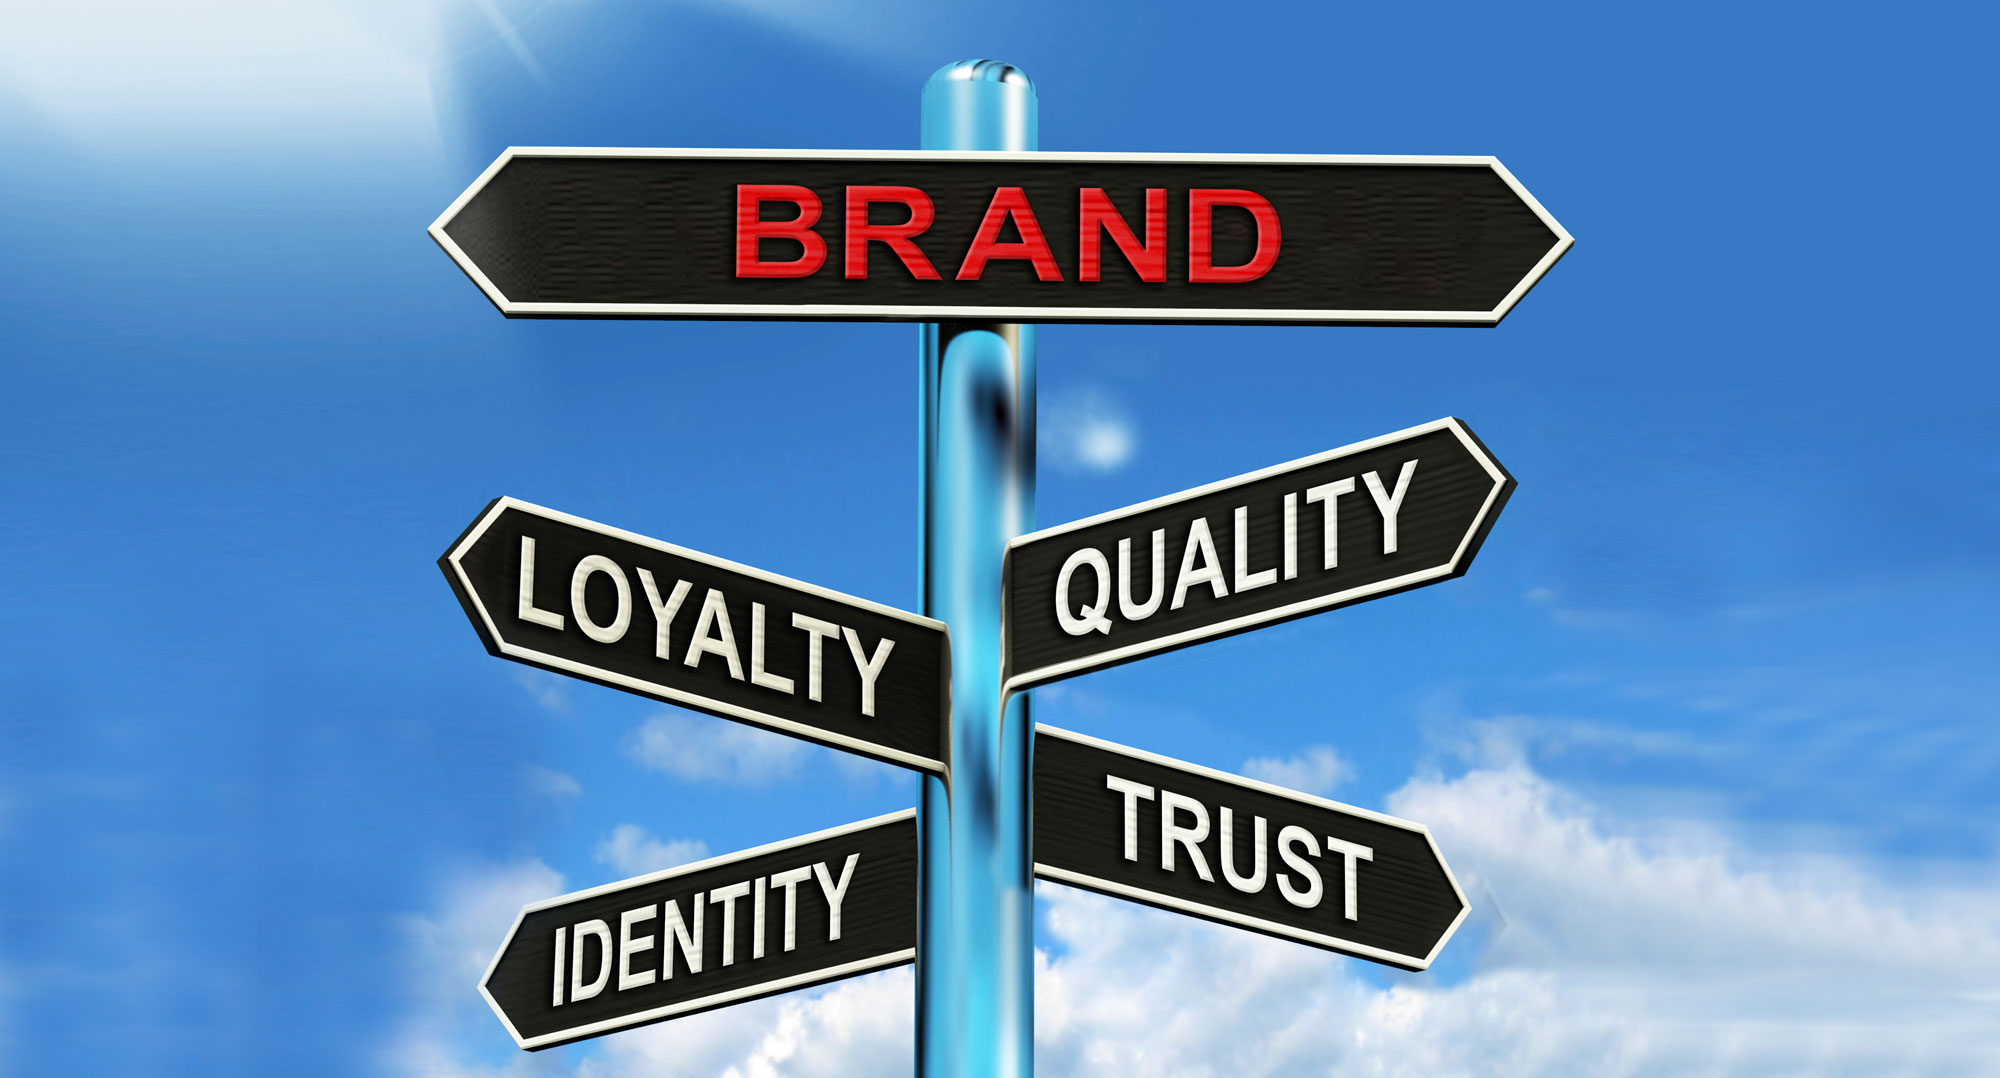 What Are The Benefits Of Brand Building For Your Business?